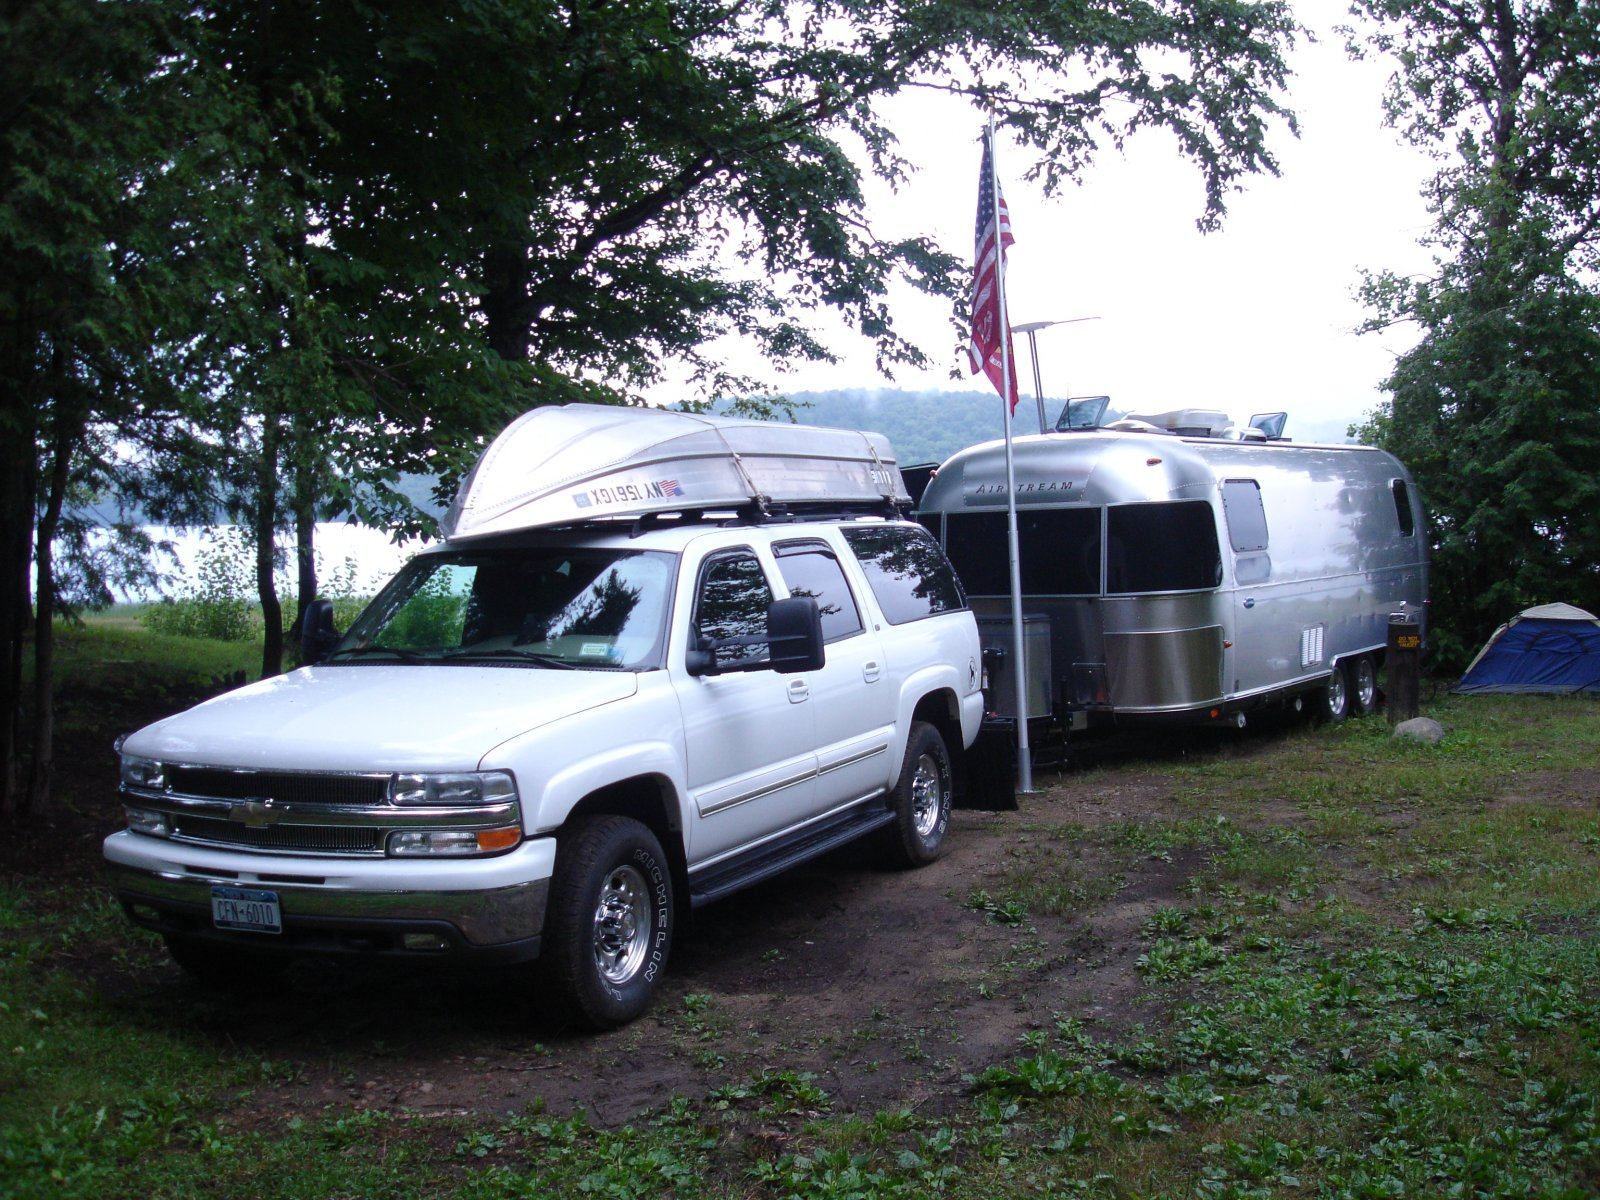 Click image for larger version  Name:PISECO LAKE CAMPING JULY 2008 031.jpg Views:66 Size:473.4 KB ID:75852